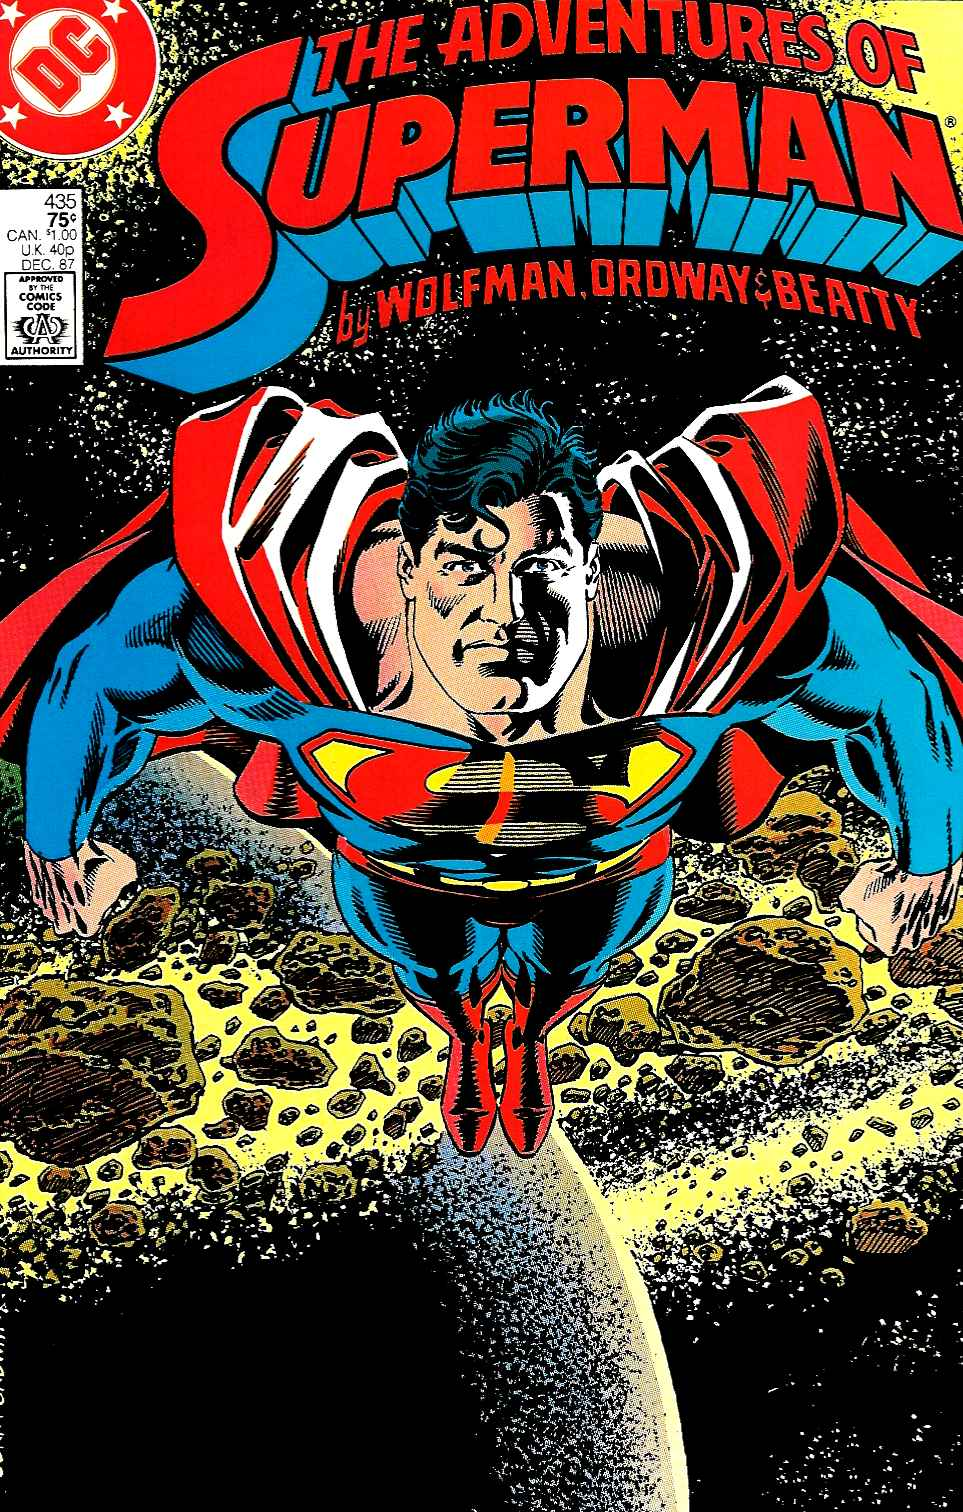 Adventures of Superman (1987) 435 Page 1